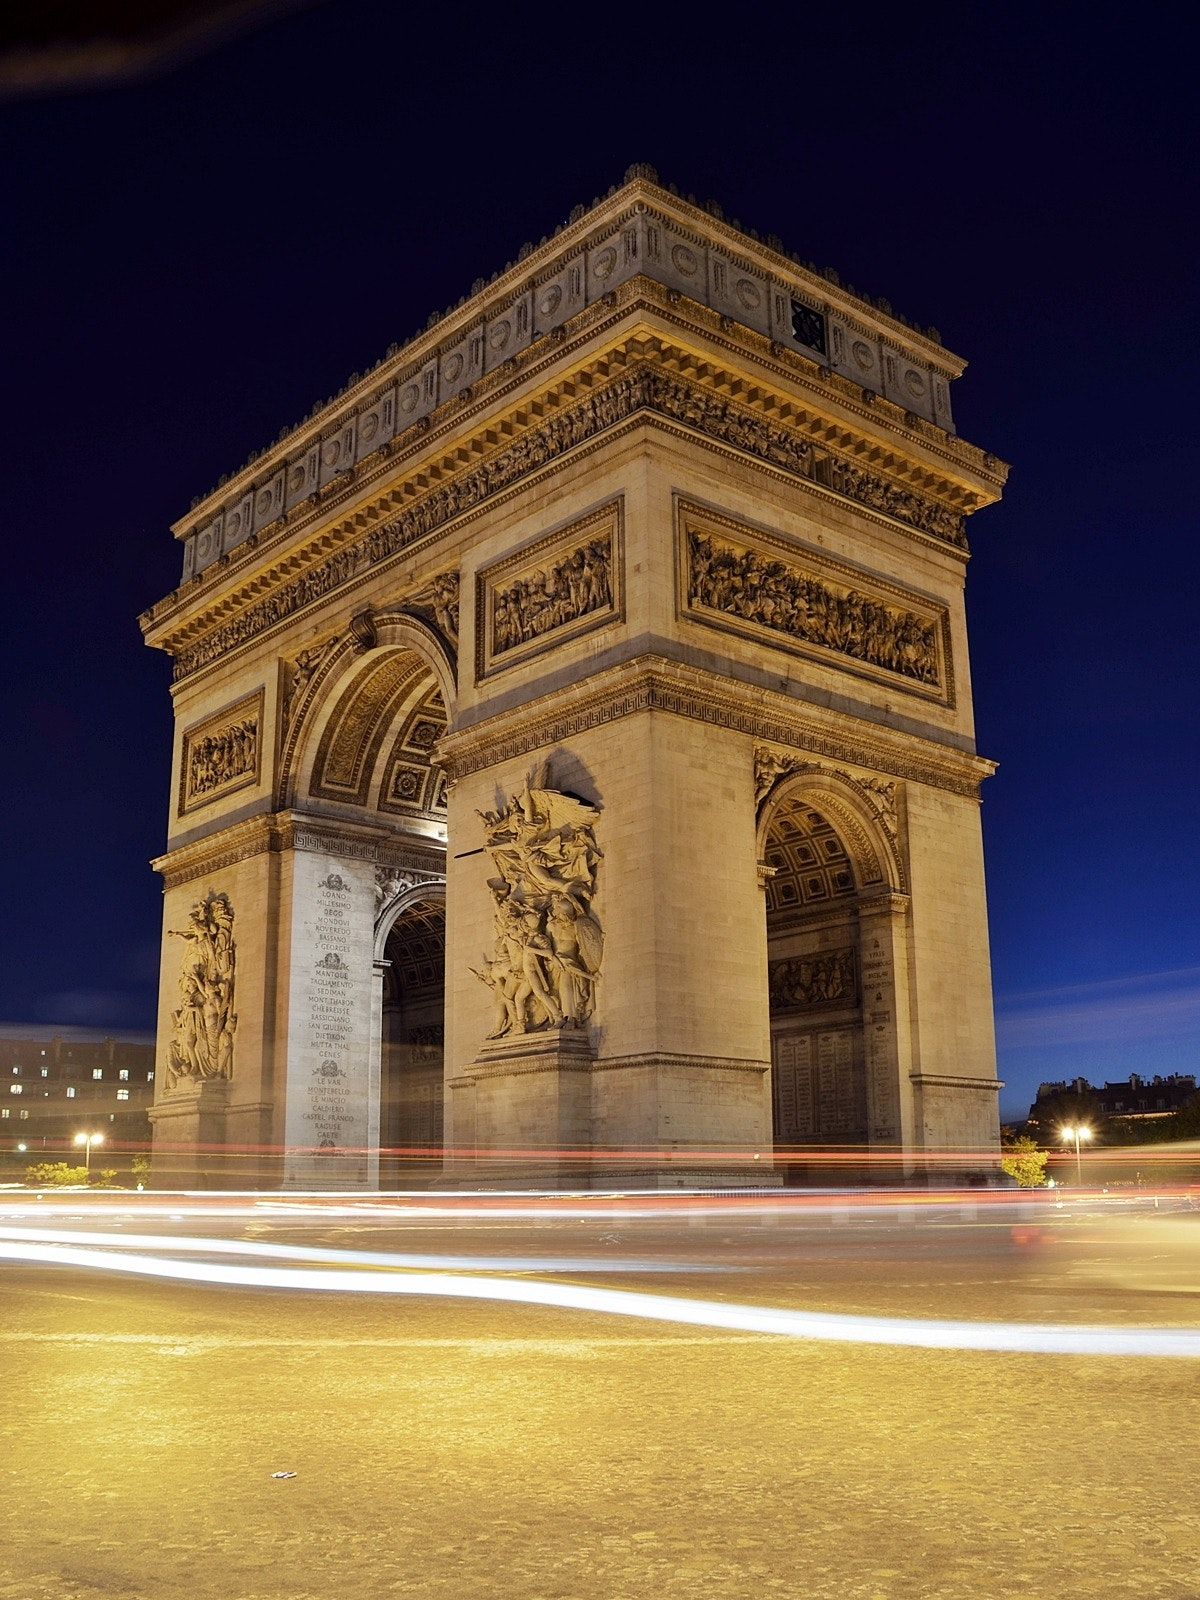 cars-france-landmark-lights-2344